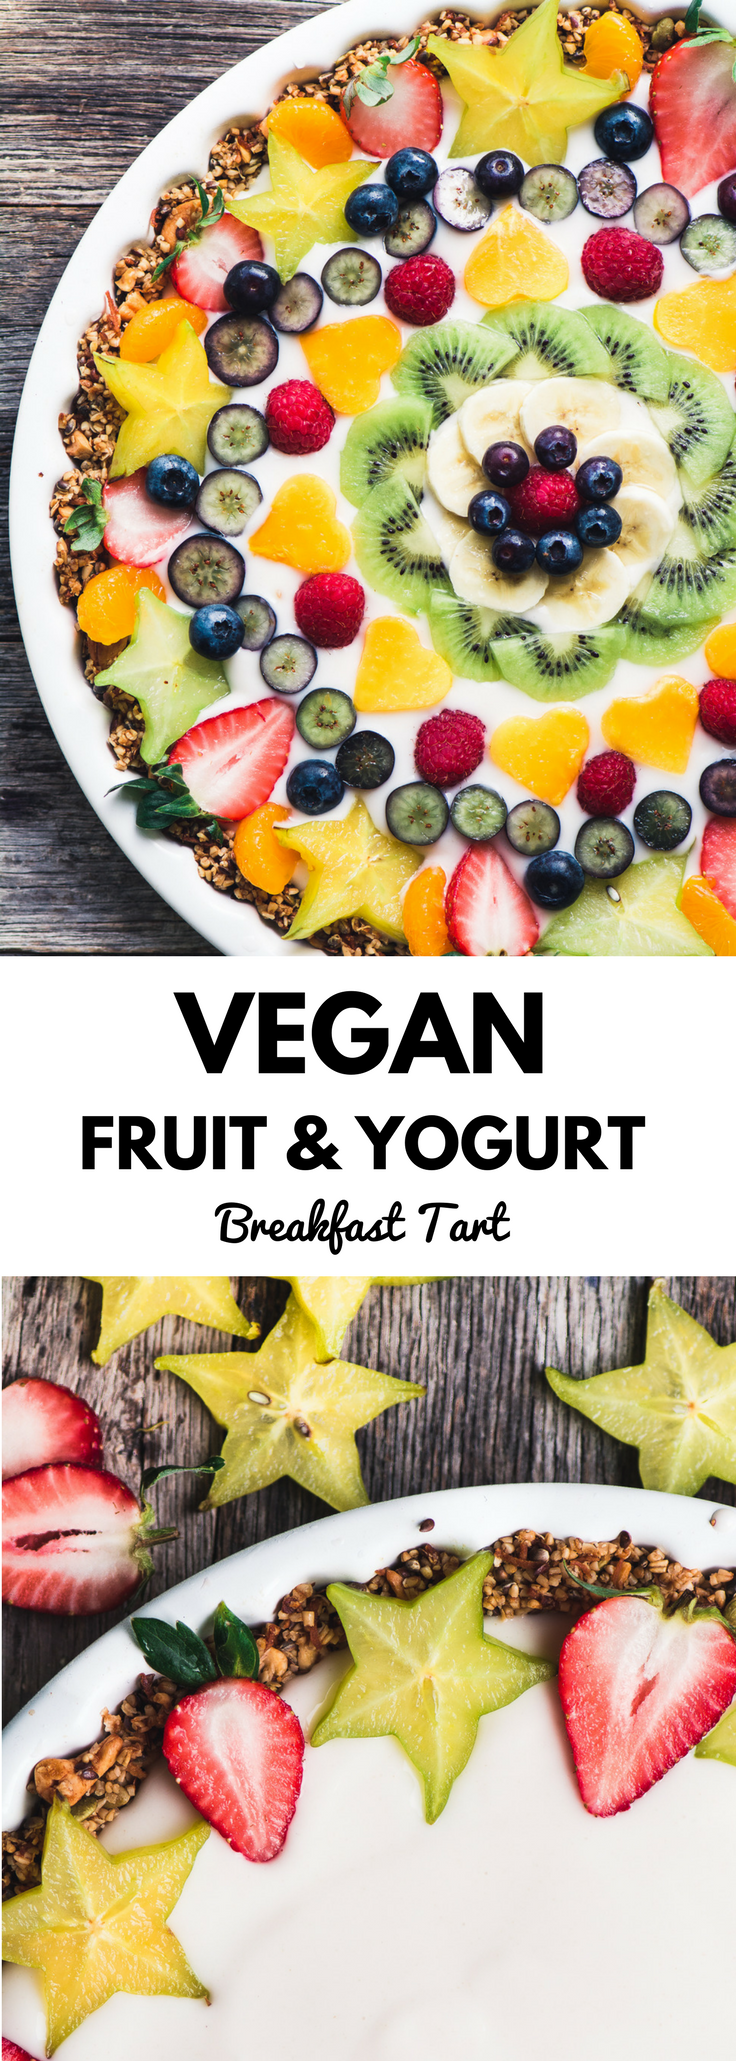 Vegan Fruit and Yogurt Breakfast Tart made with coconut yogurt | healthy | vegan | breakfast | fruit tart |